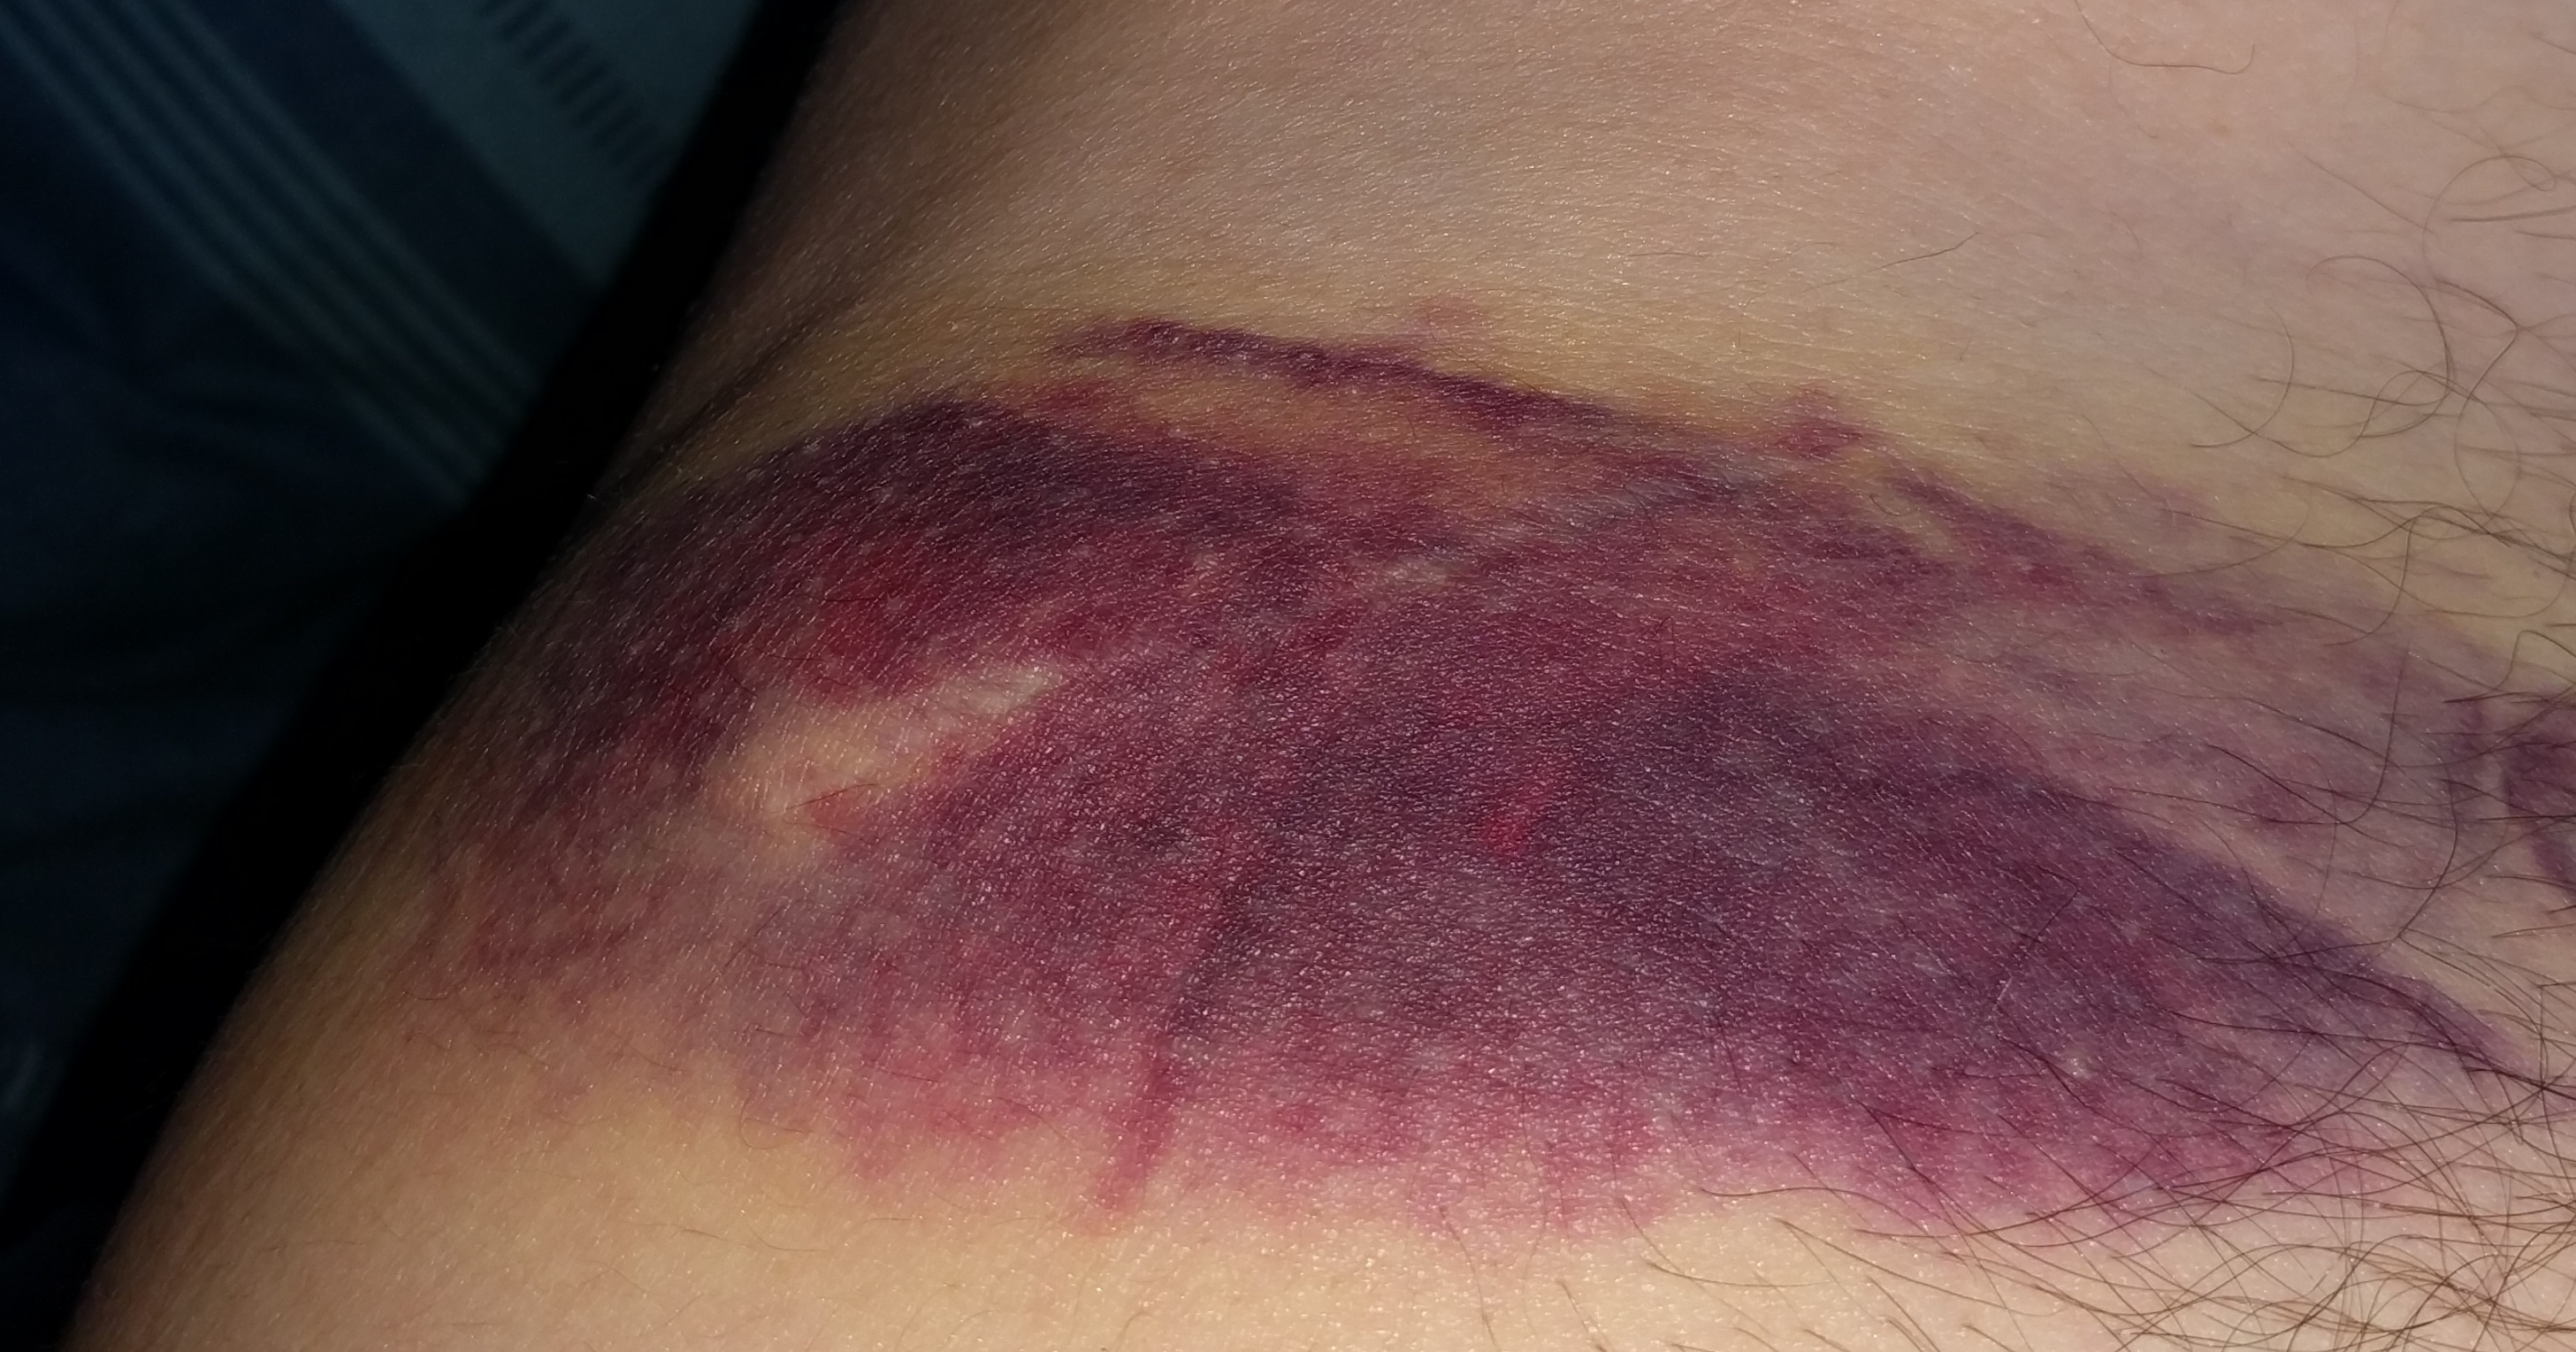 Post-TZ-crash bruised hip